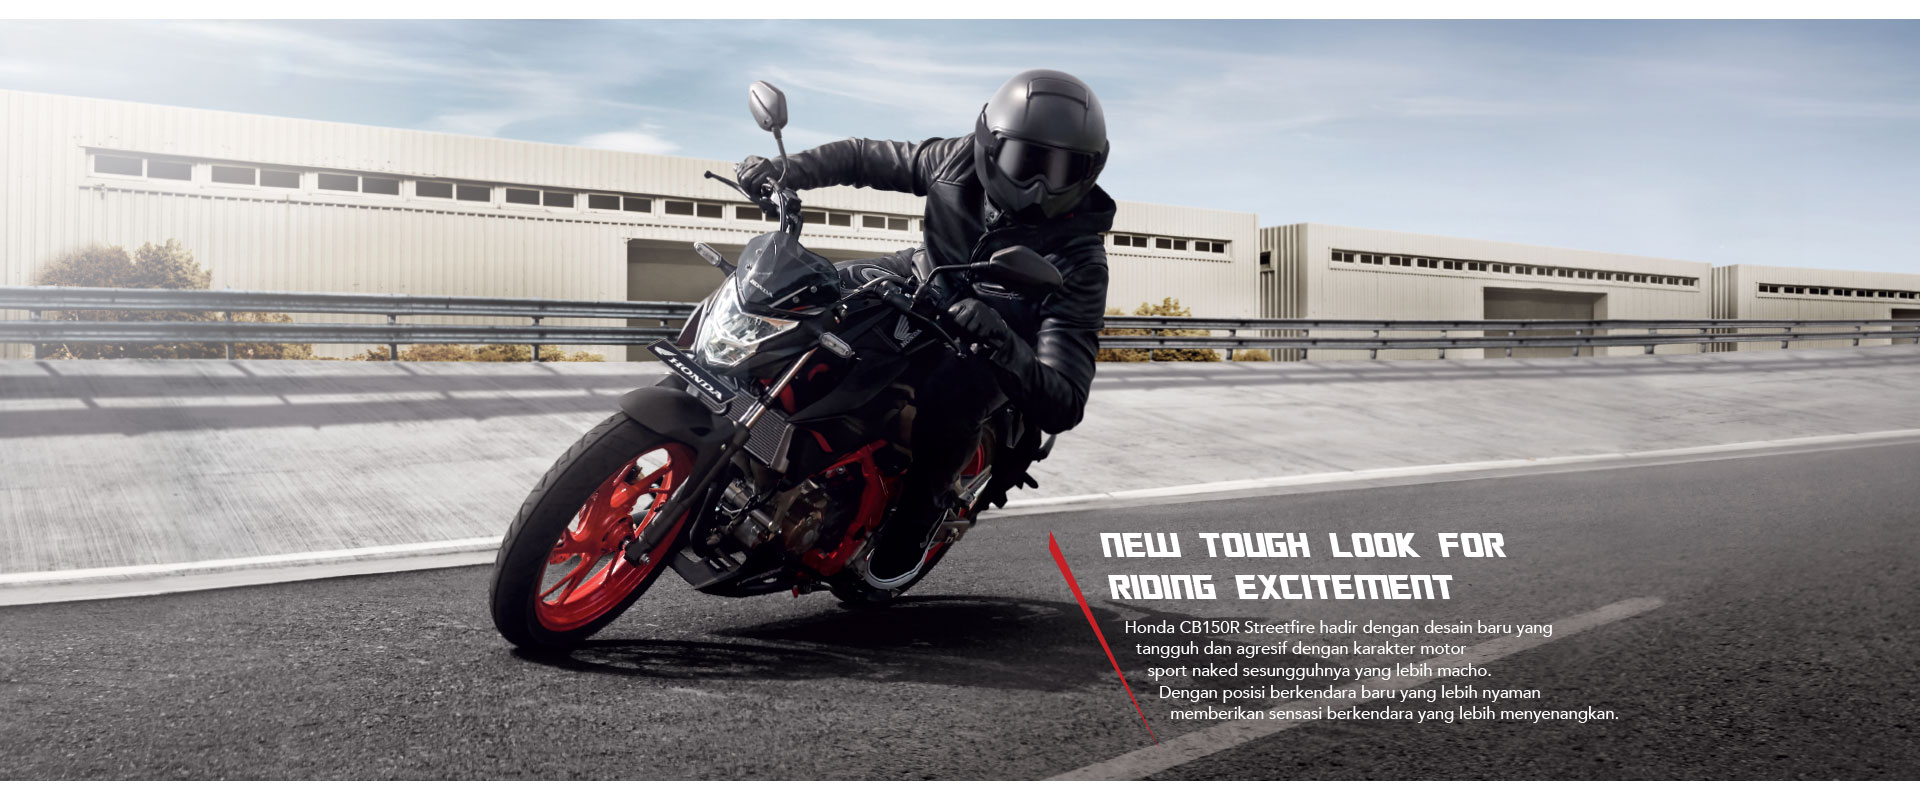 New tough look Honda CB150R Streetfire Refrech